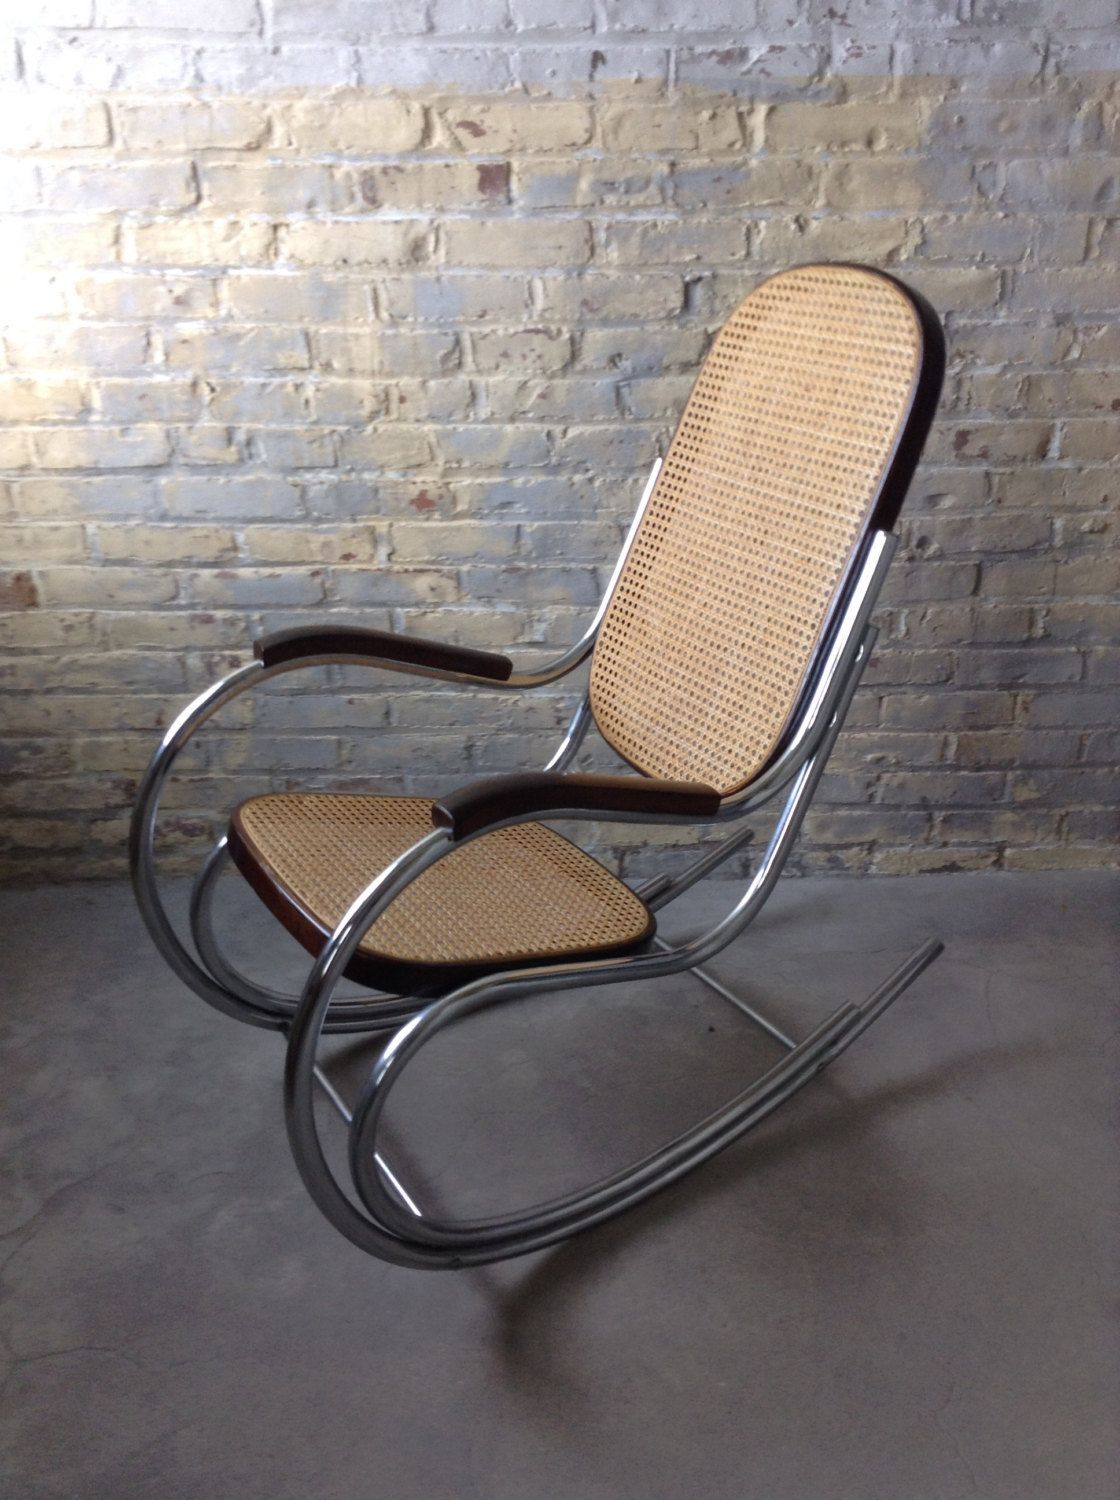 info for 9370d bbefc Mid Century Chrome Tubular Bentwood Rocking Chair - Mid ...